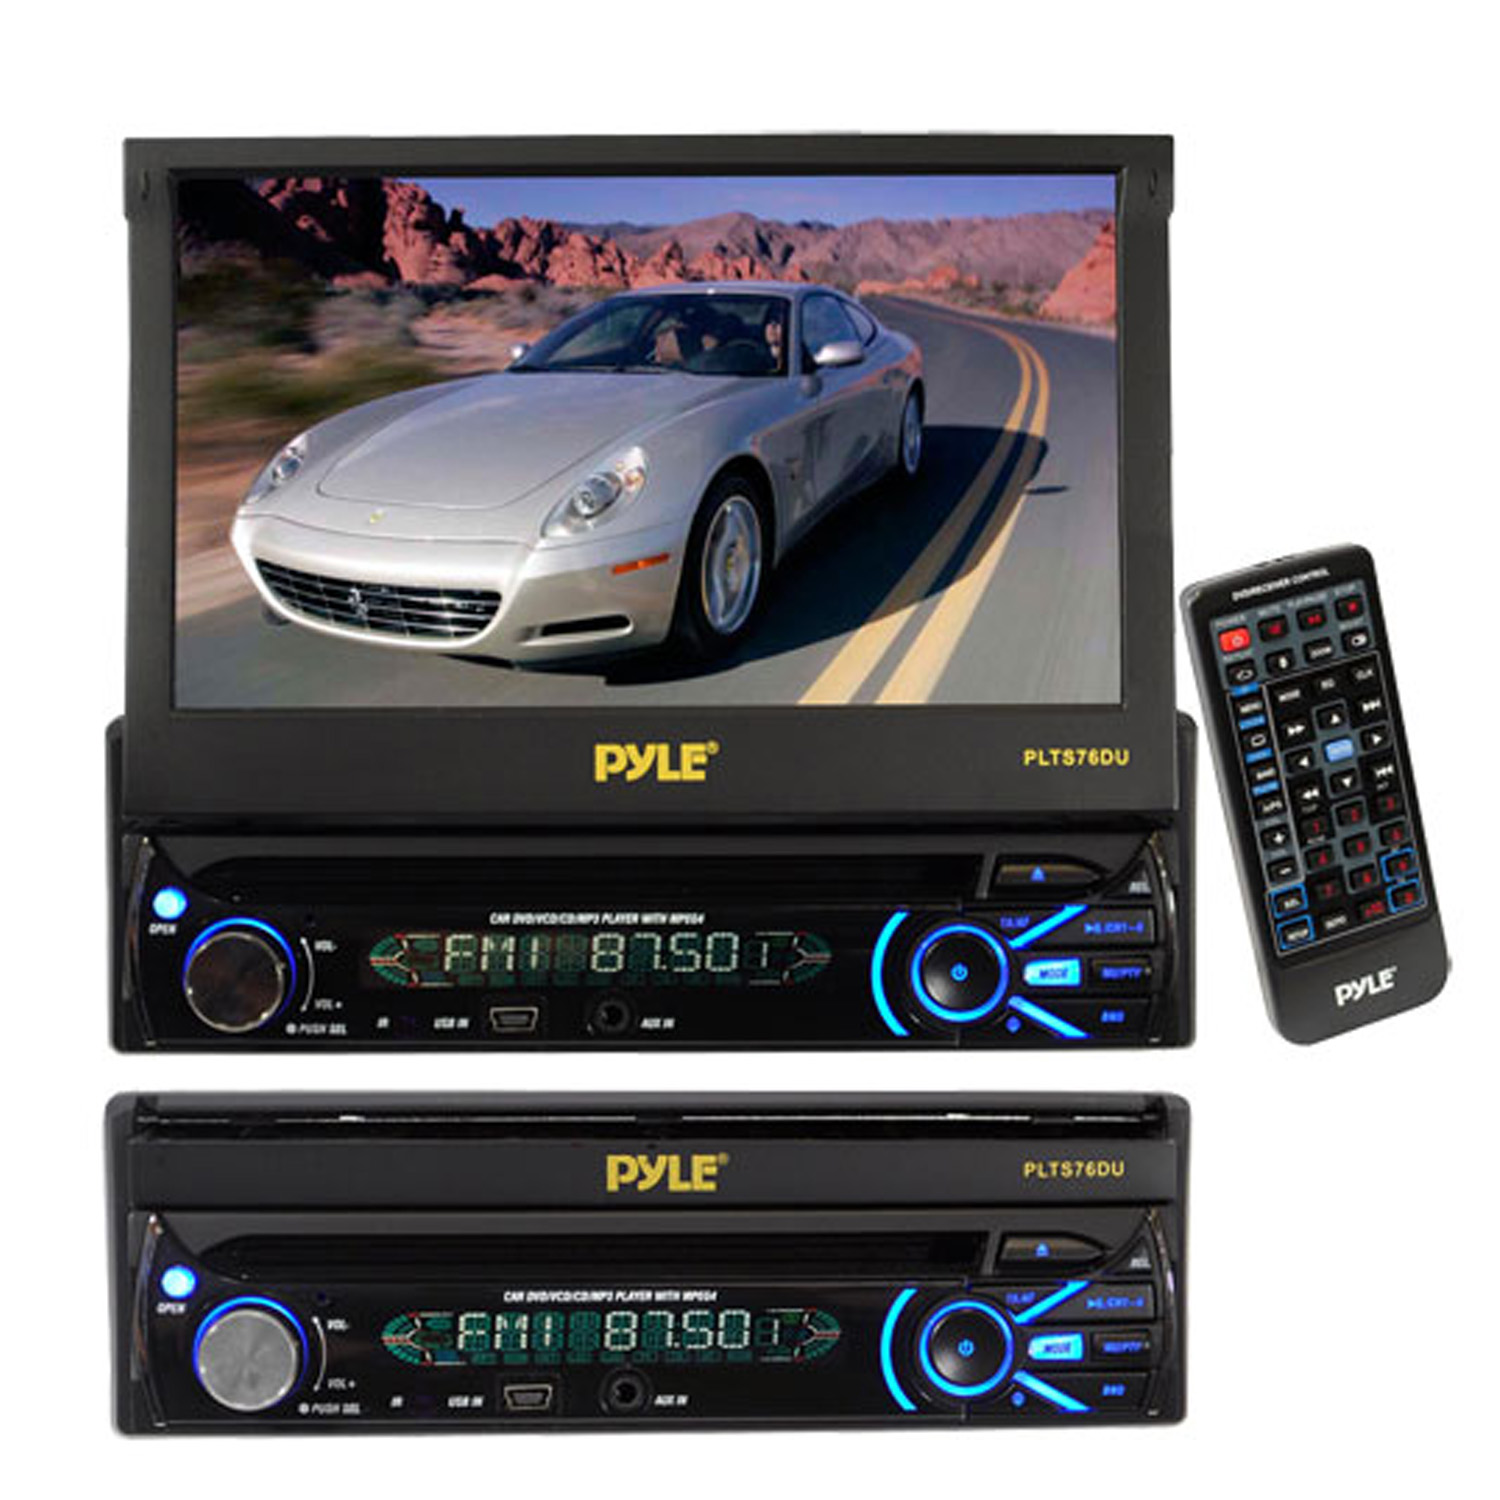 hight resolution of pyle plts76du 7 touch screen motorized detachable tft lcd pyle plbt72g wiring diagram pyle plts76du wiring diagram